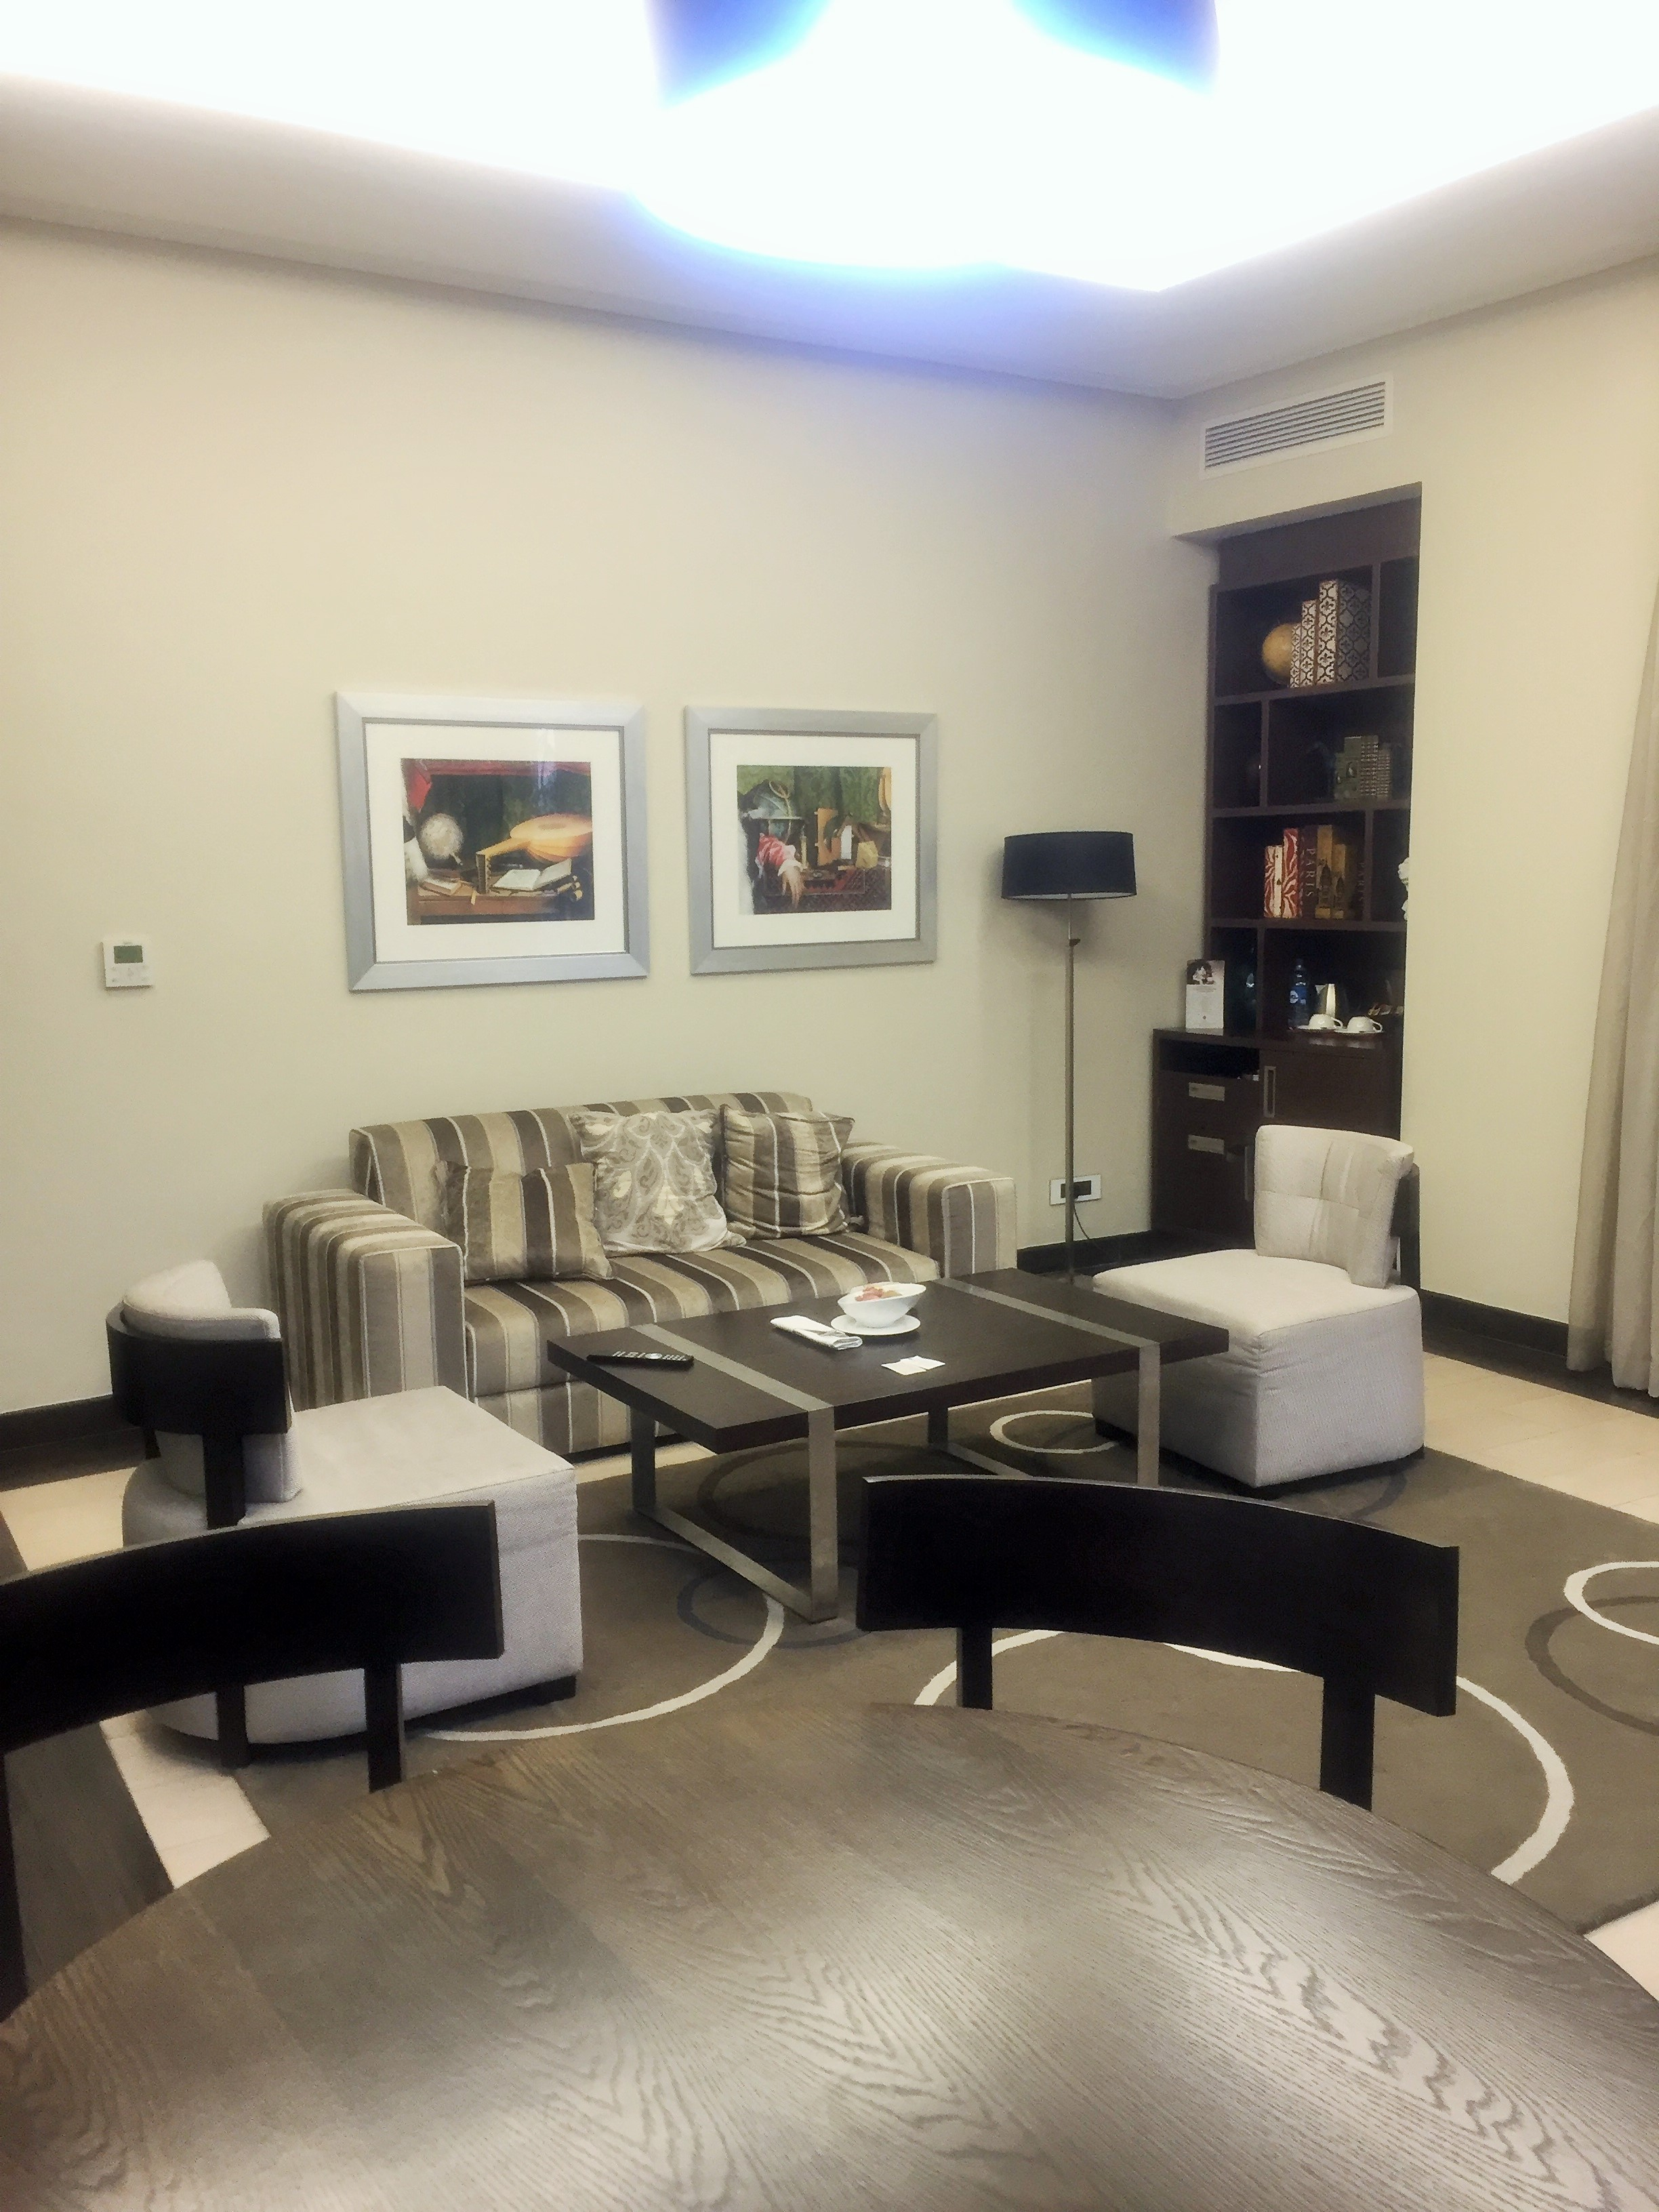 The living room of the 2-bedroom penthouse suite